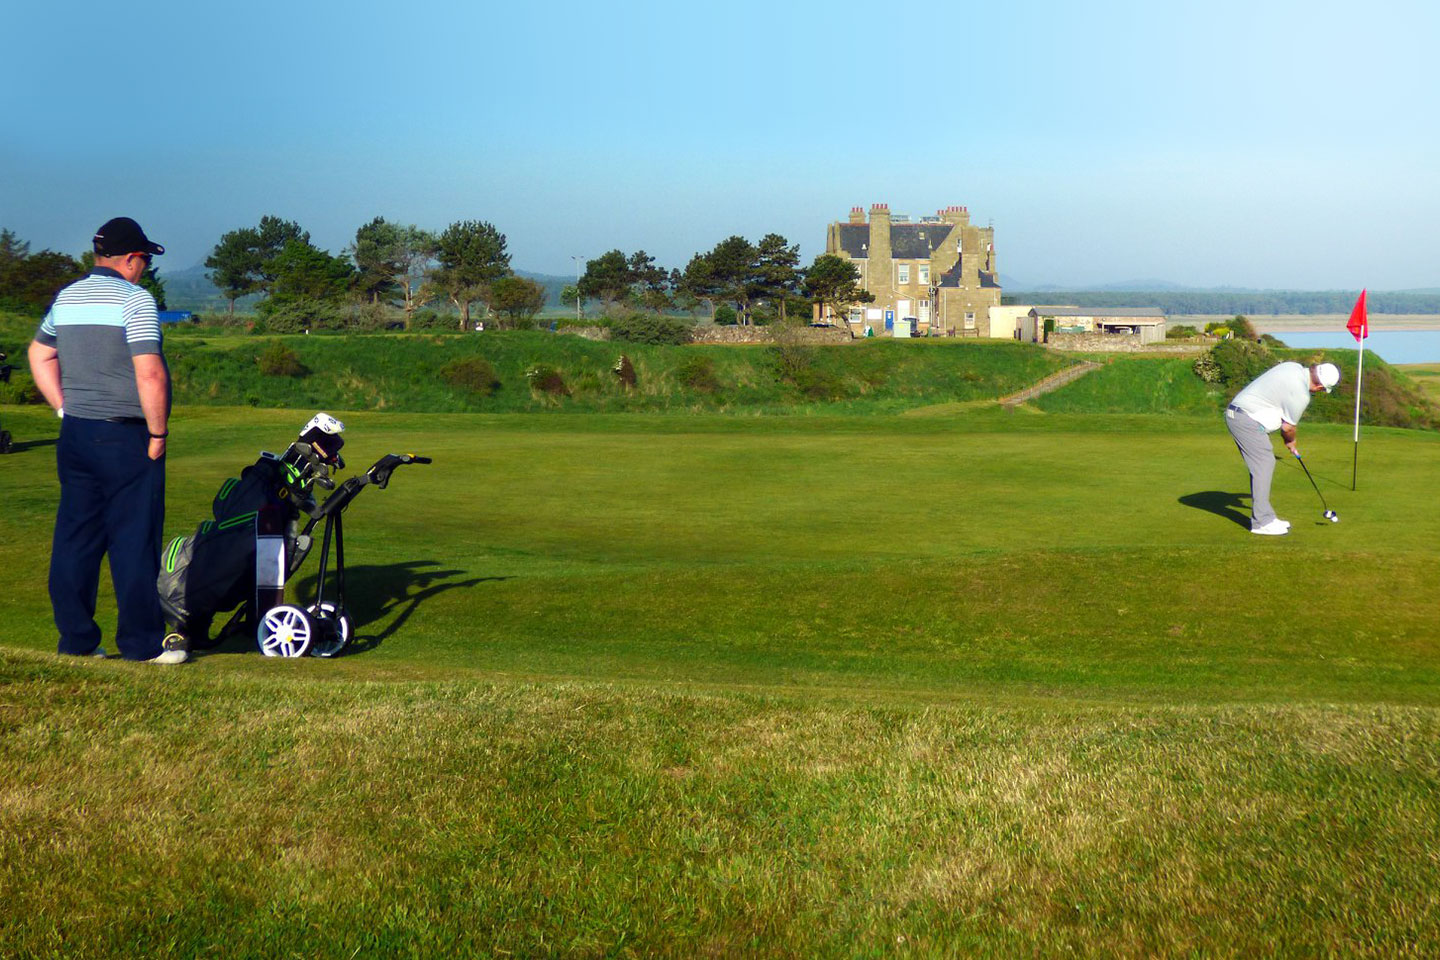 2 Men Playing Golf At St. Margret's Golf Course